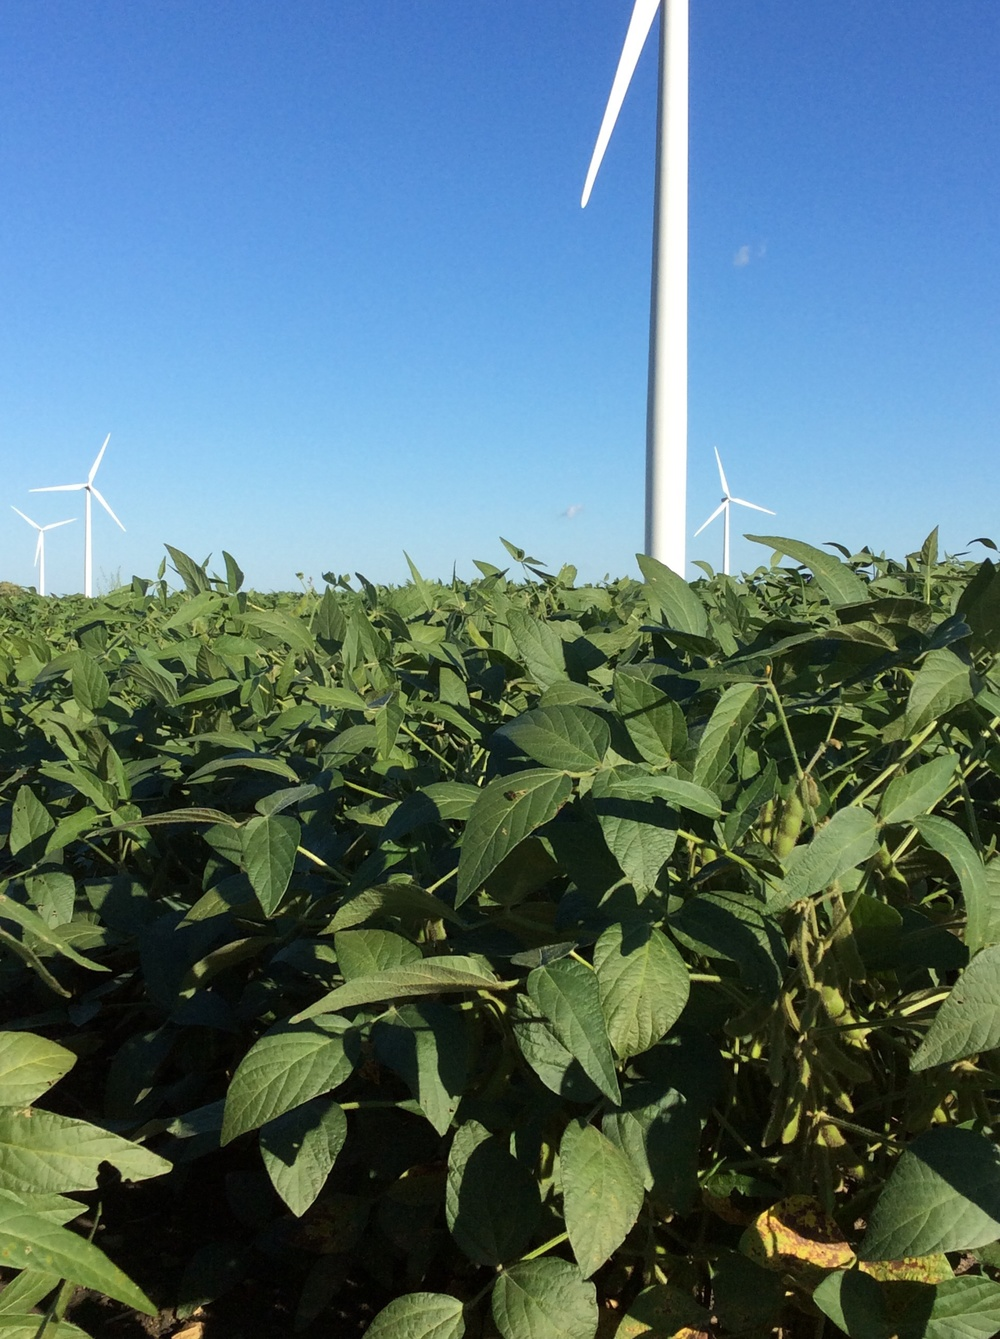 Soybeans under the blades